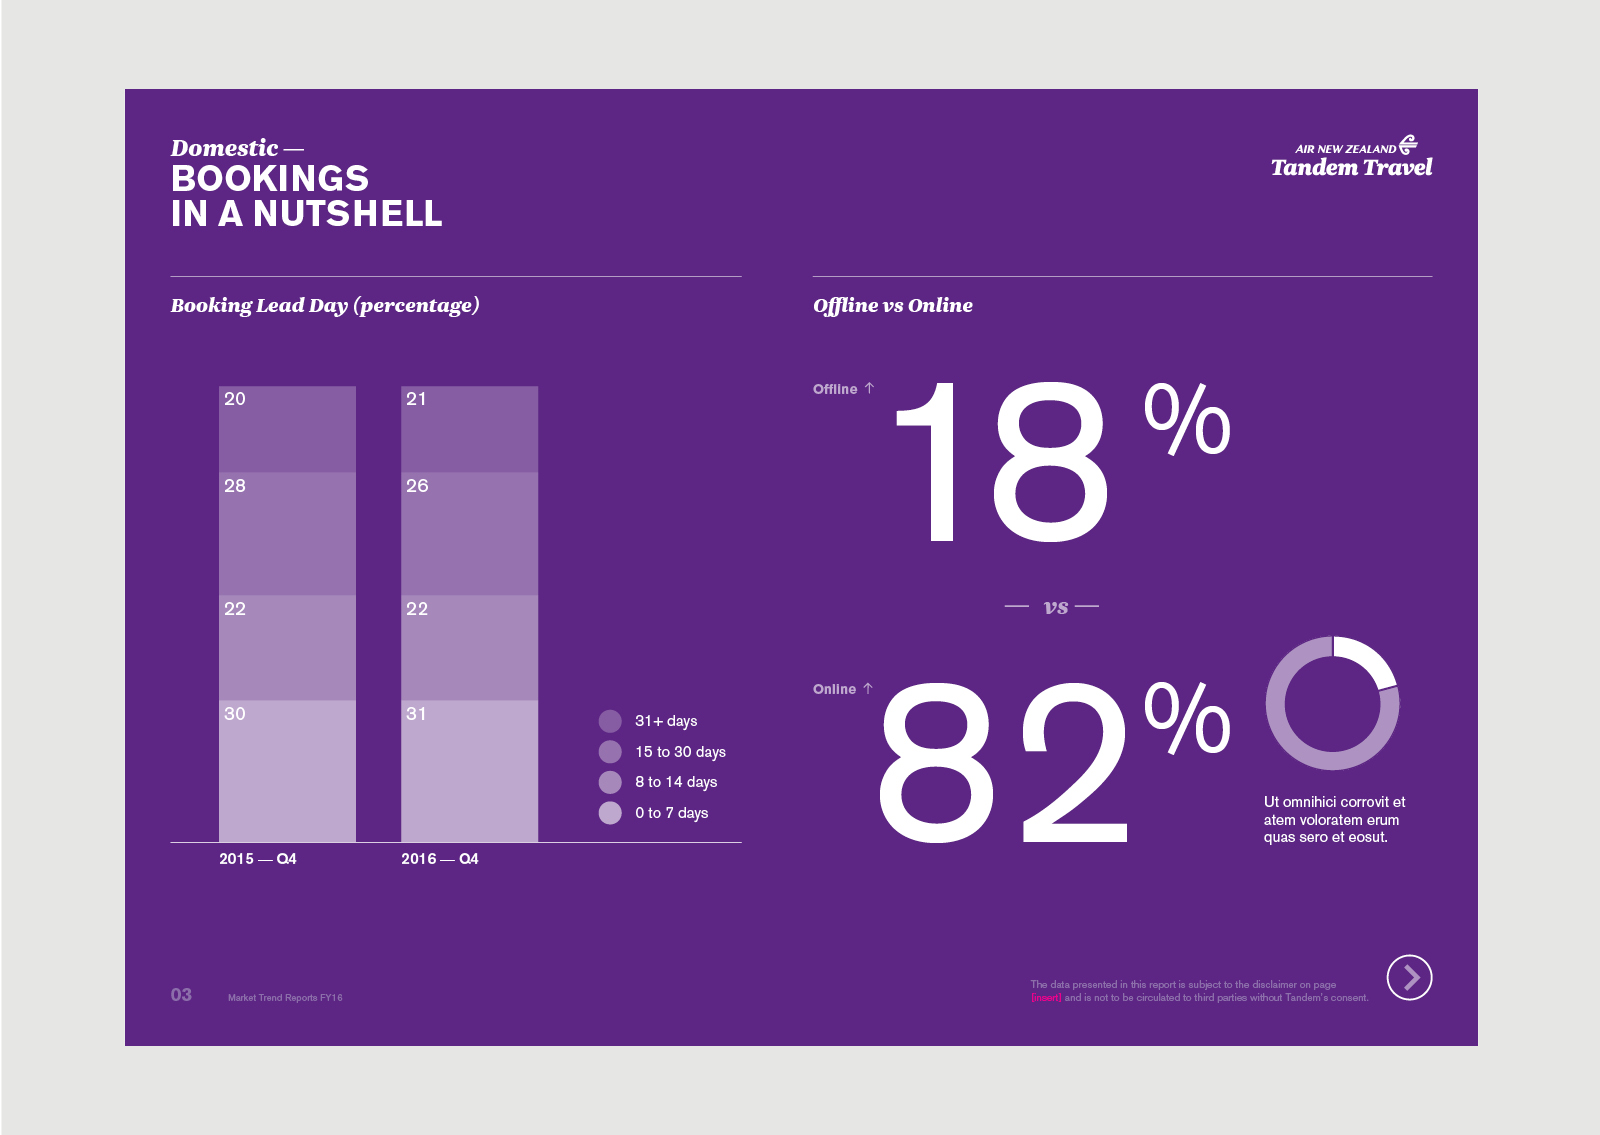 AirNZ Tandem Travel Online Report – Domestic Bookings showing data visualisation on purple background